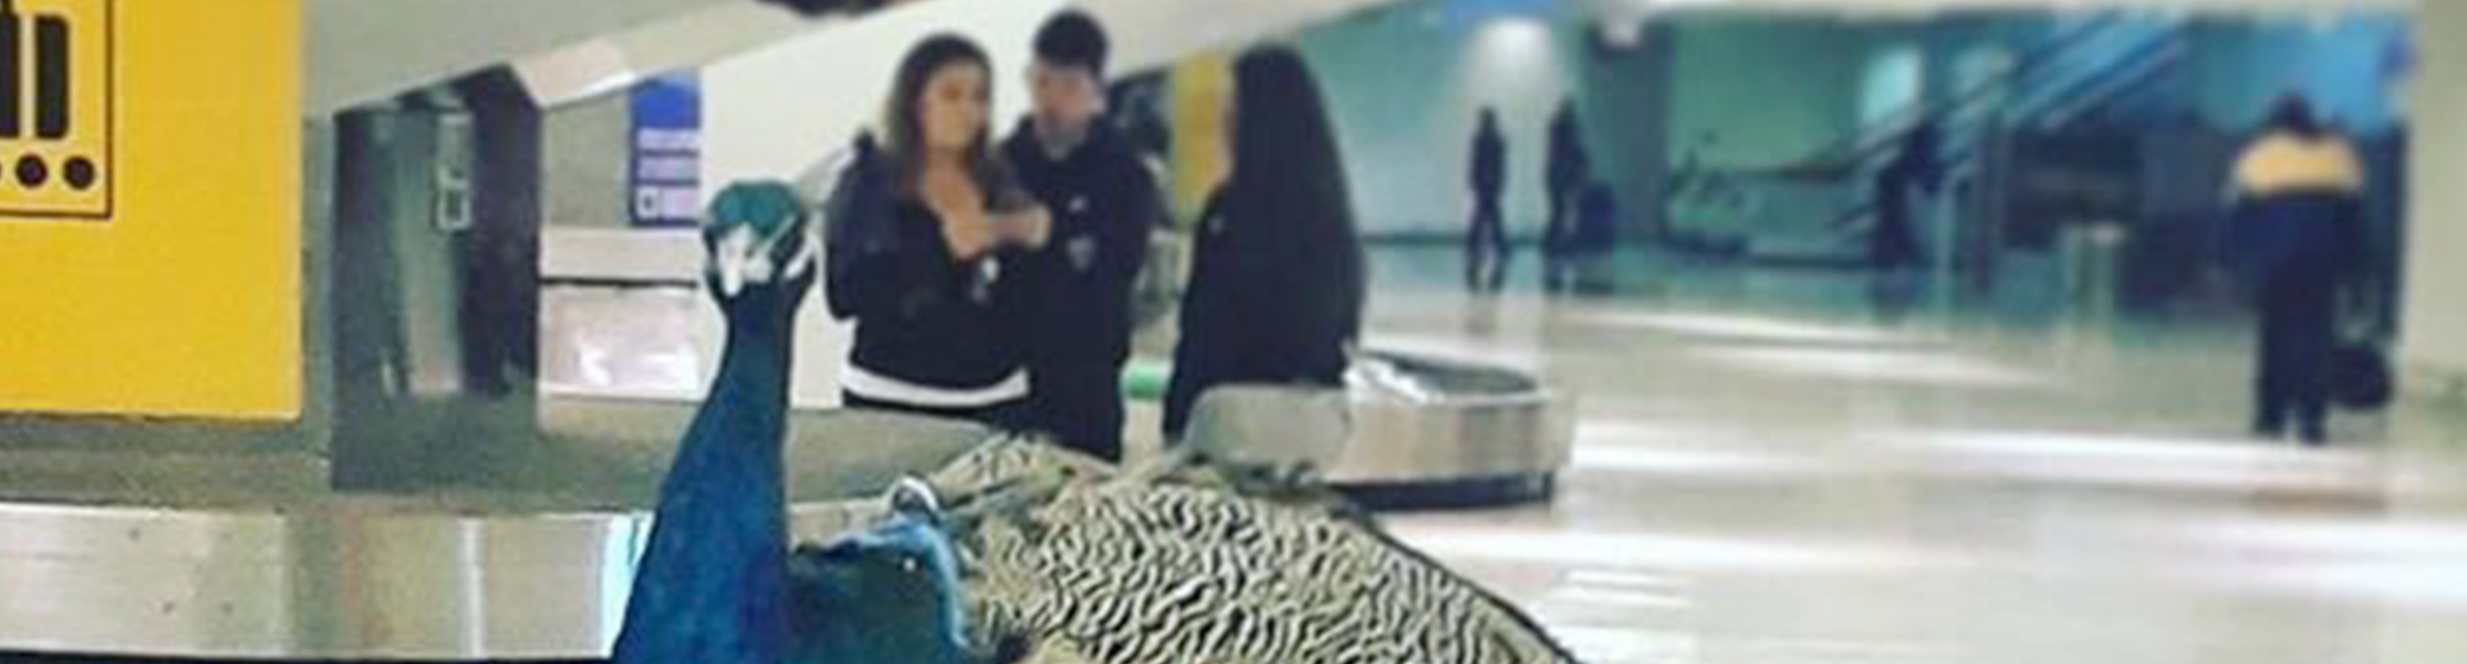 How To Get Your Peacock To Fly Business Class With You-post-image